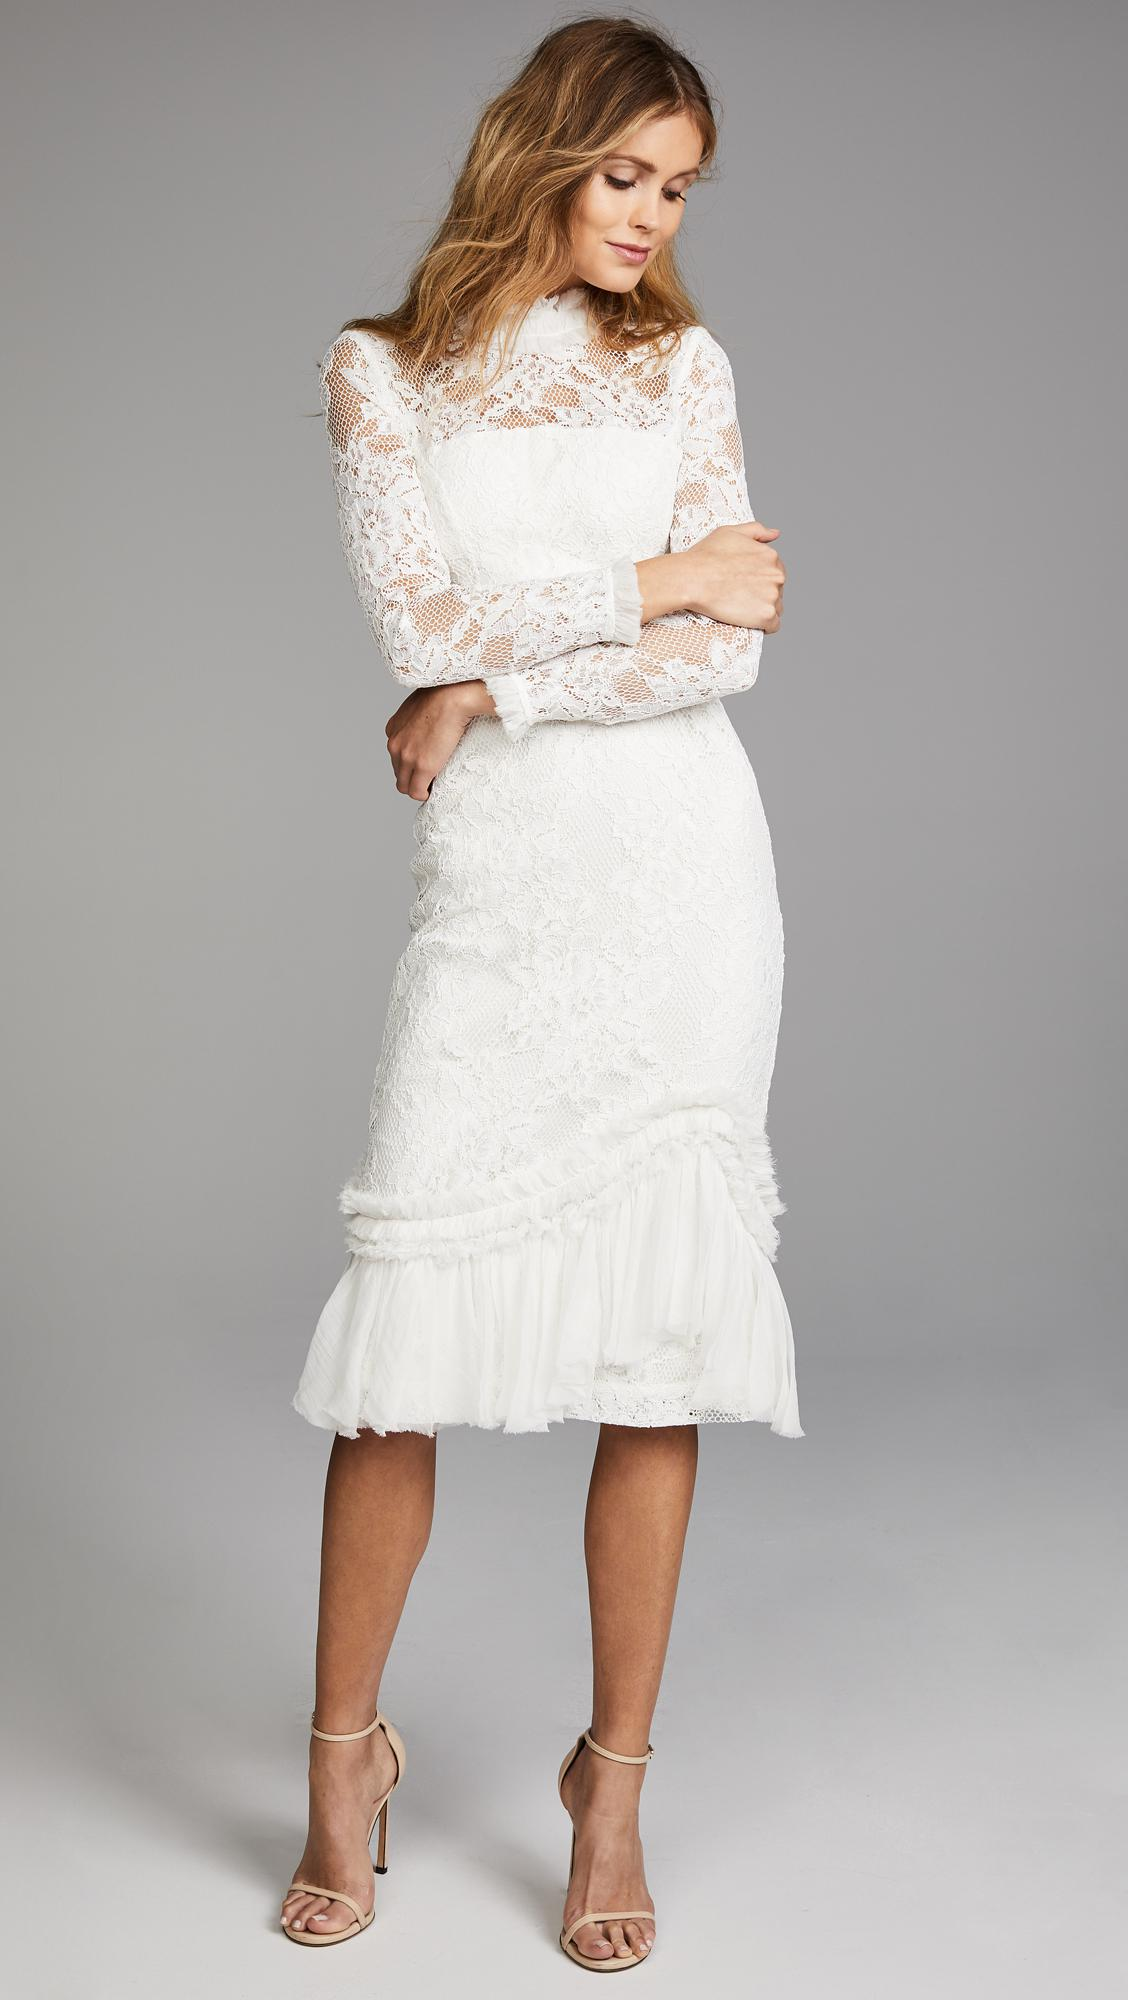 9babc8ae Alexis Anabella Dress in White - Lyst